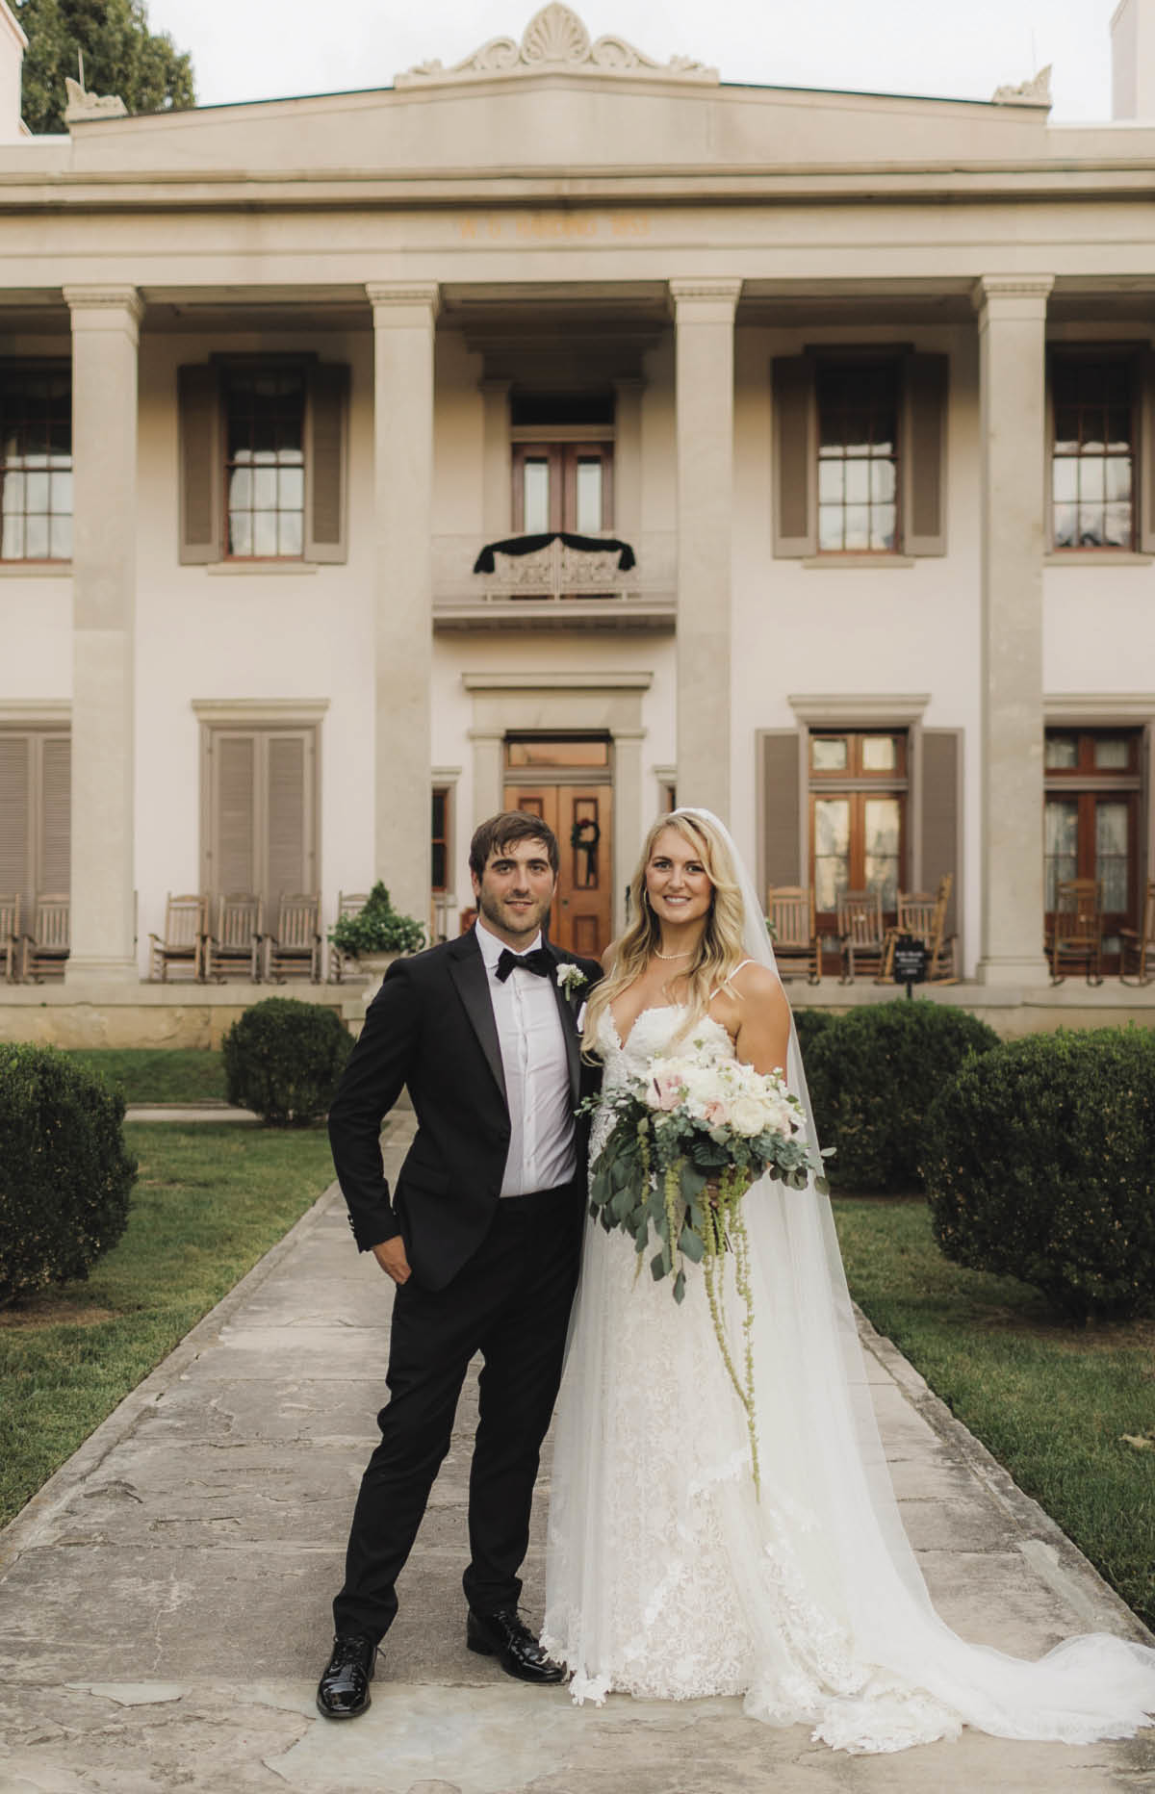 Taking Vows: Moody and Waterman